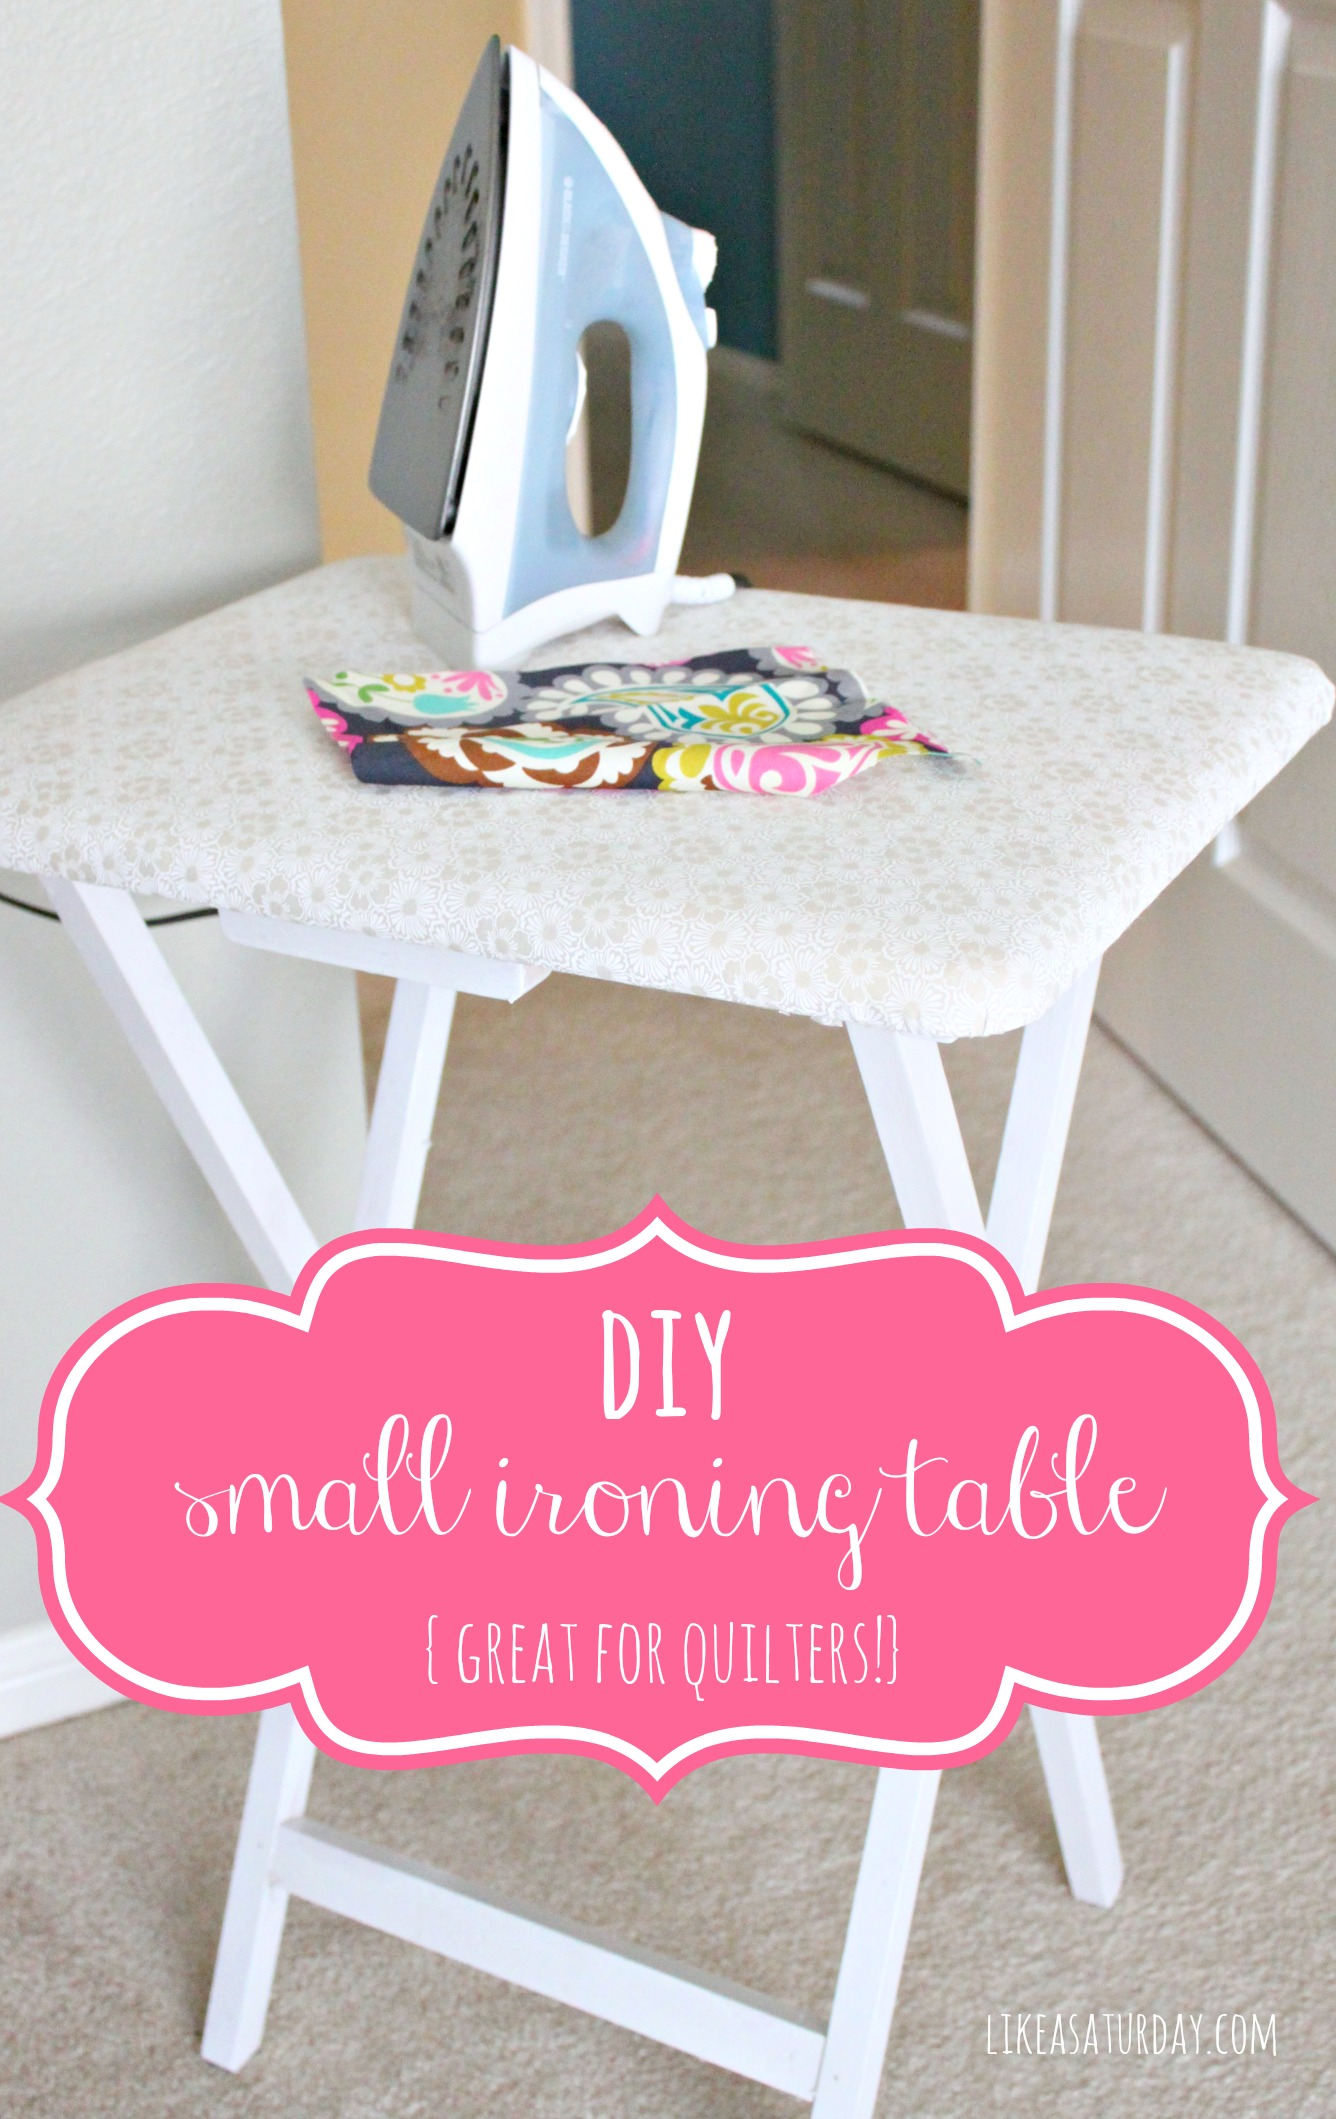 Original Friday Feature:  Small ironing table out of a TV tray from Like A Saturday